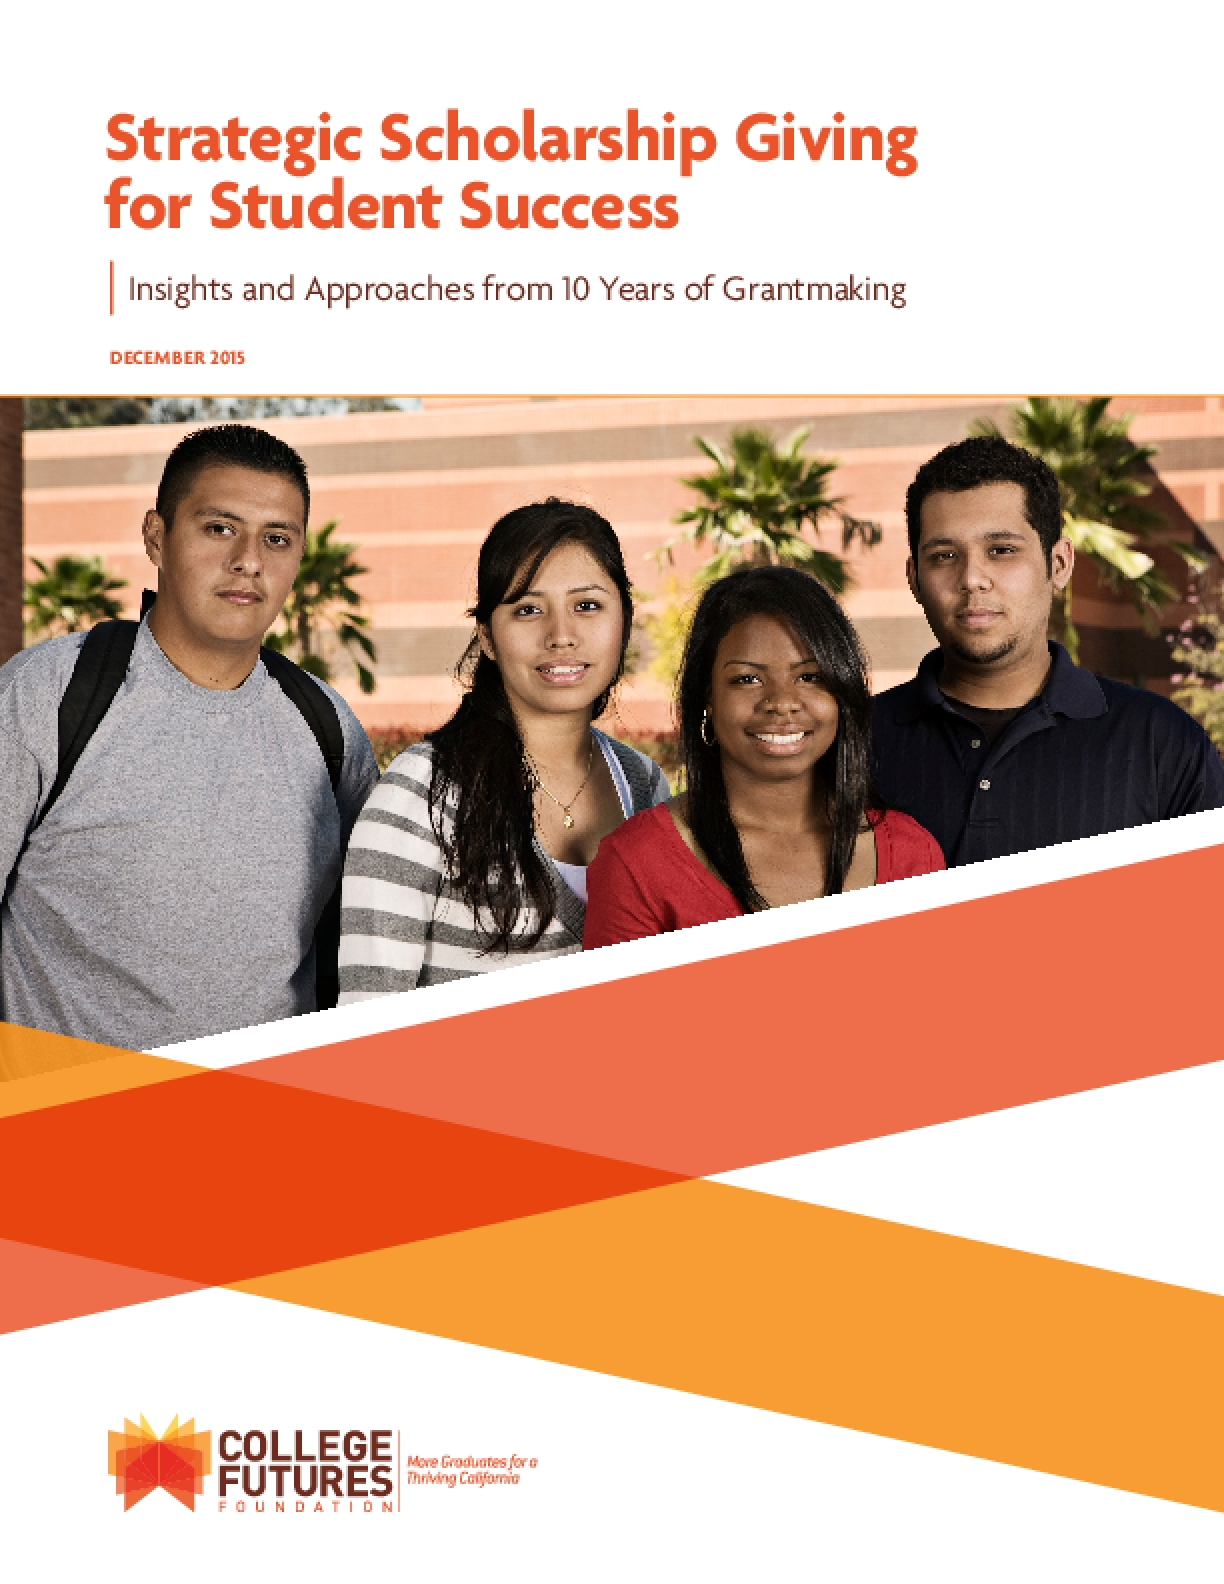 Strategic Scholarship Giving for Student Success